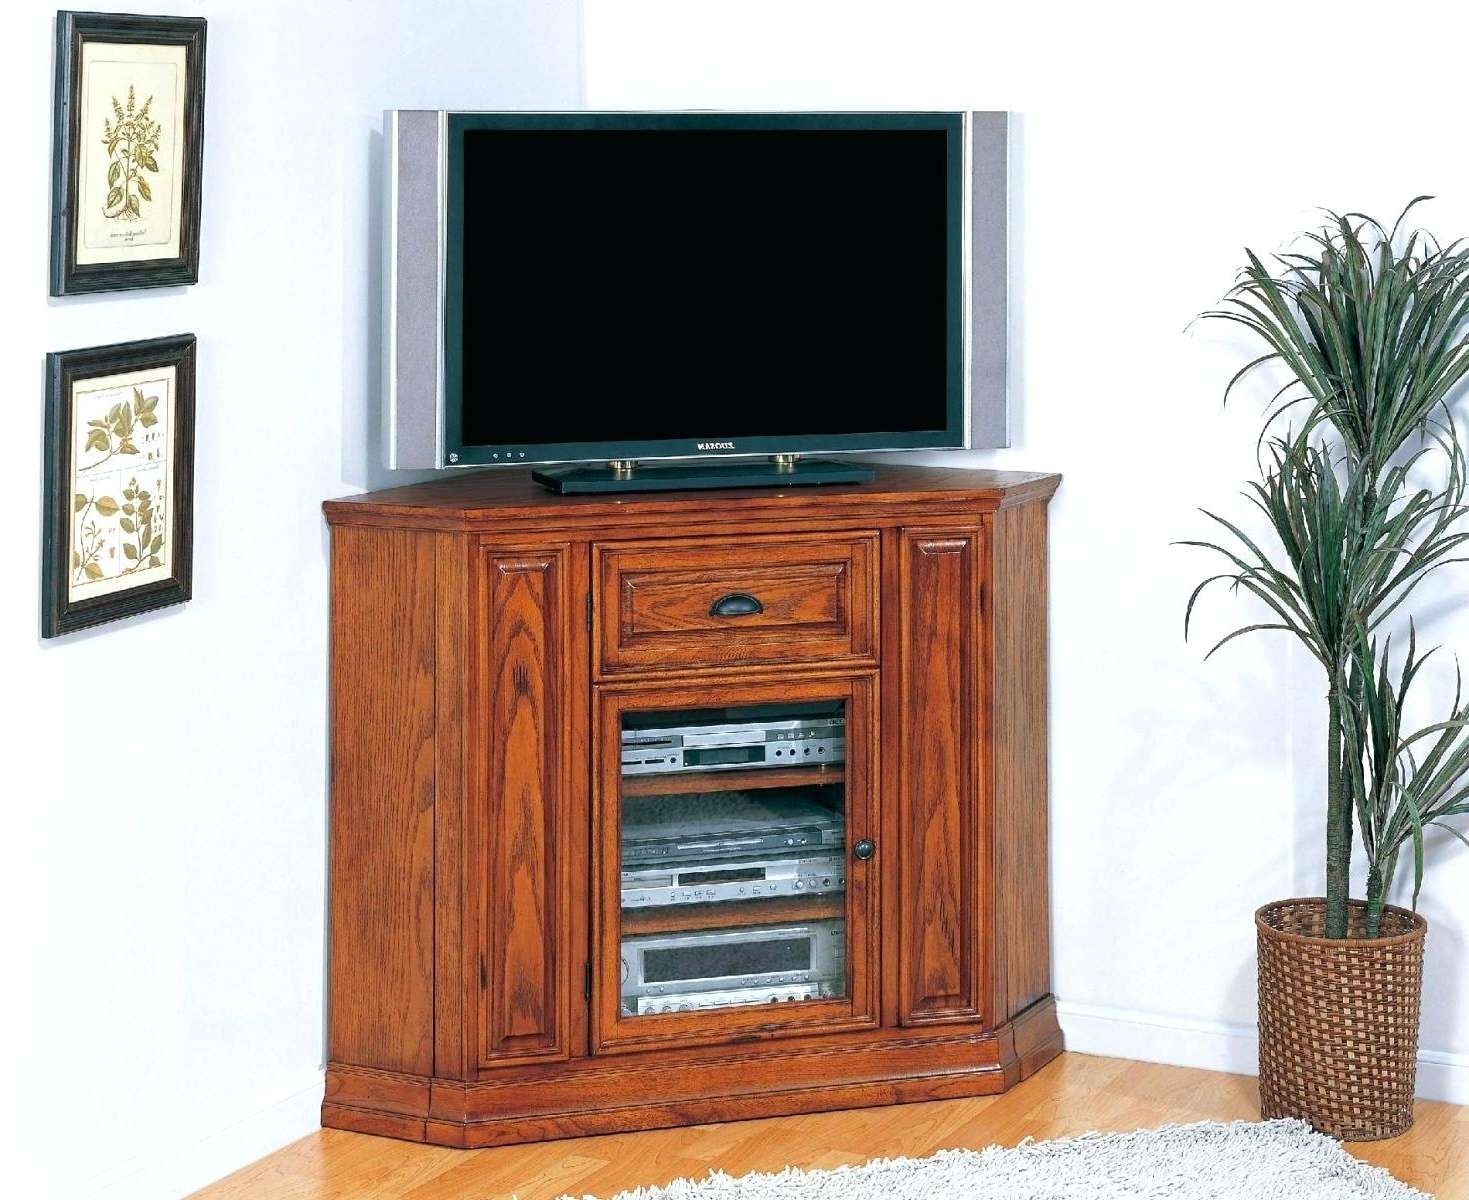 Articles With Small Tall Corner Tv Stand Tag: Tall Skinny Tv Stand With Regard To Tall Skinny Tv Stands (View 1 of 15)